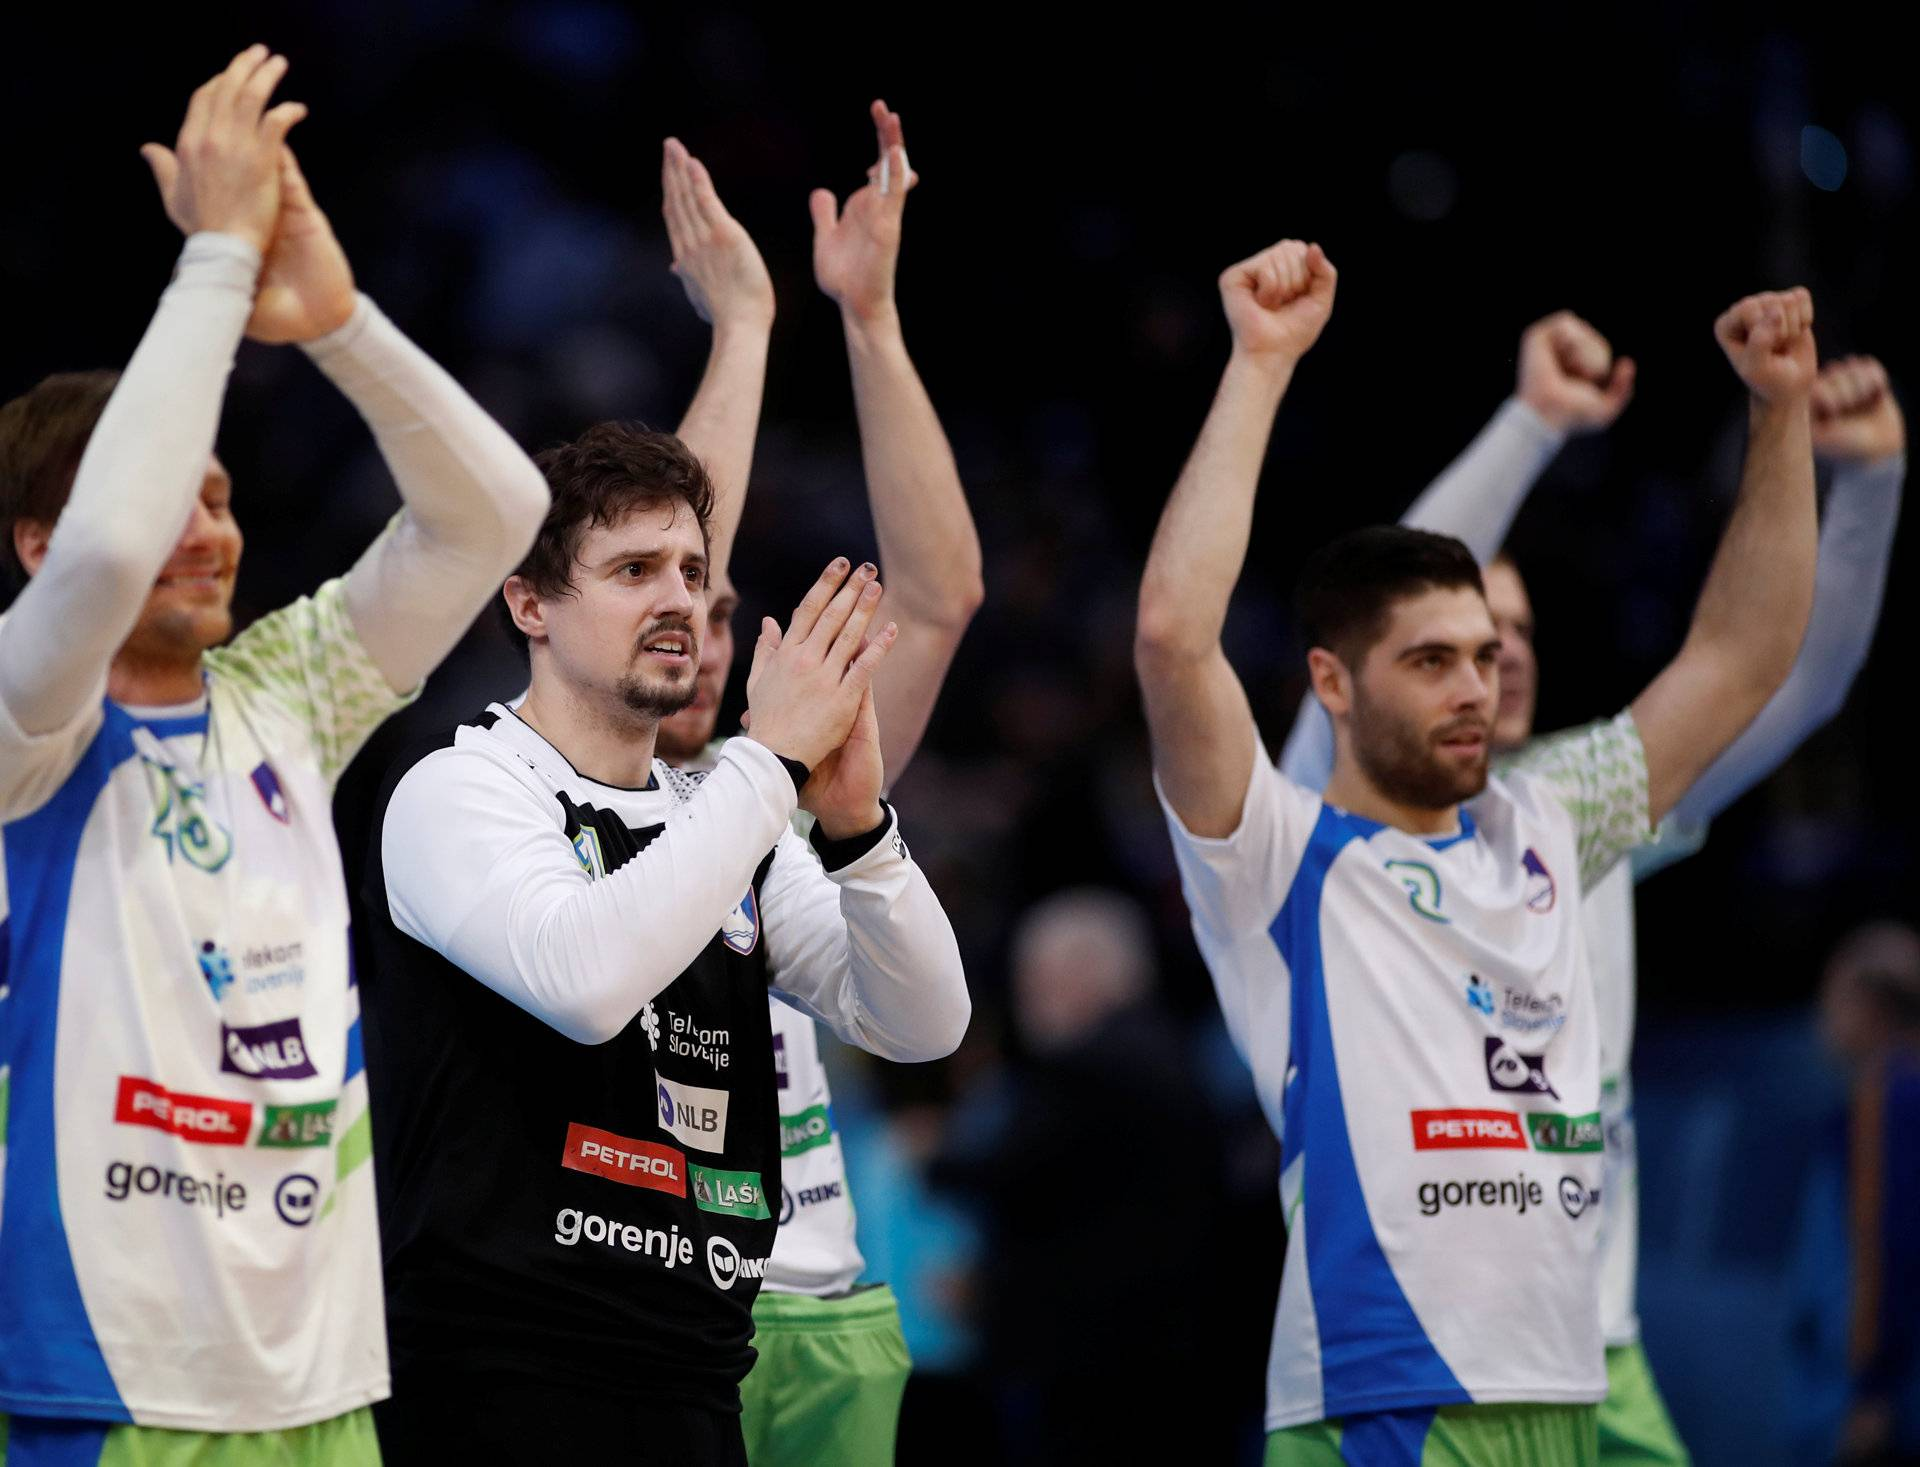 Men's Handball - Russia v Slovenia - 2017 Men's World Championship Second Round, Eighth Finals